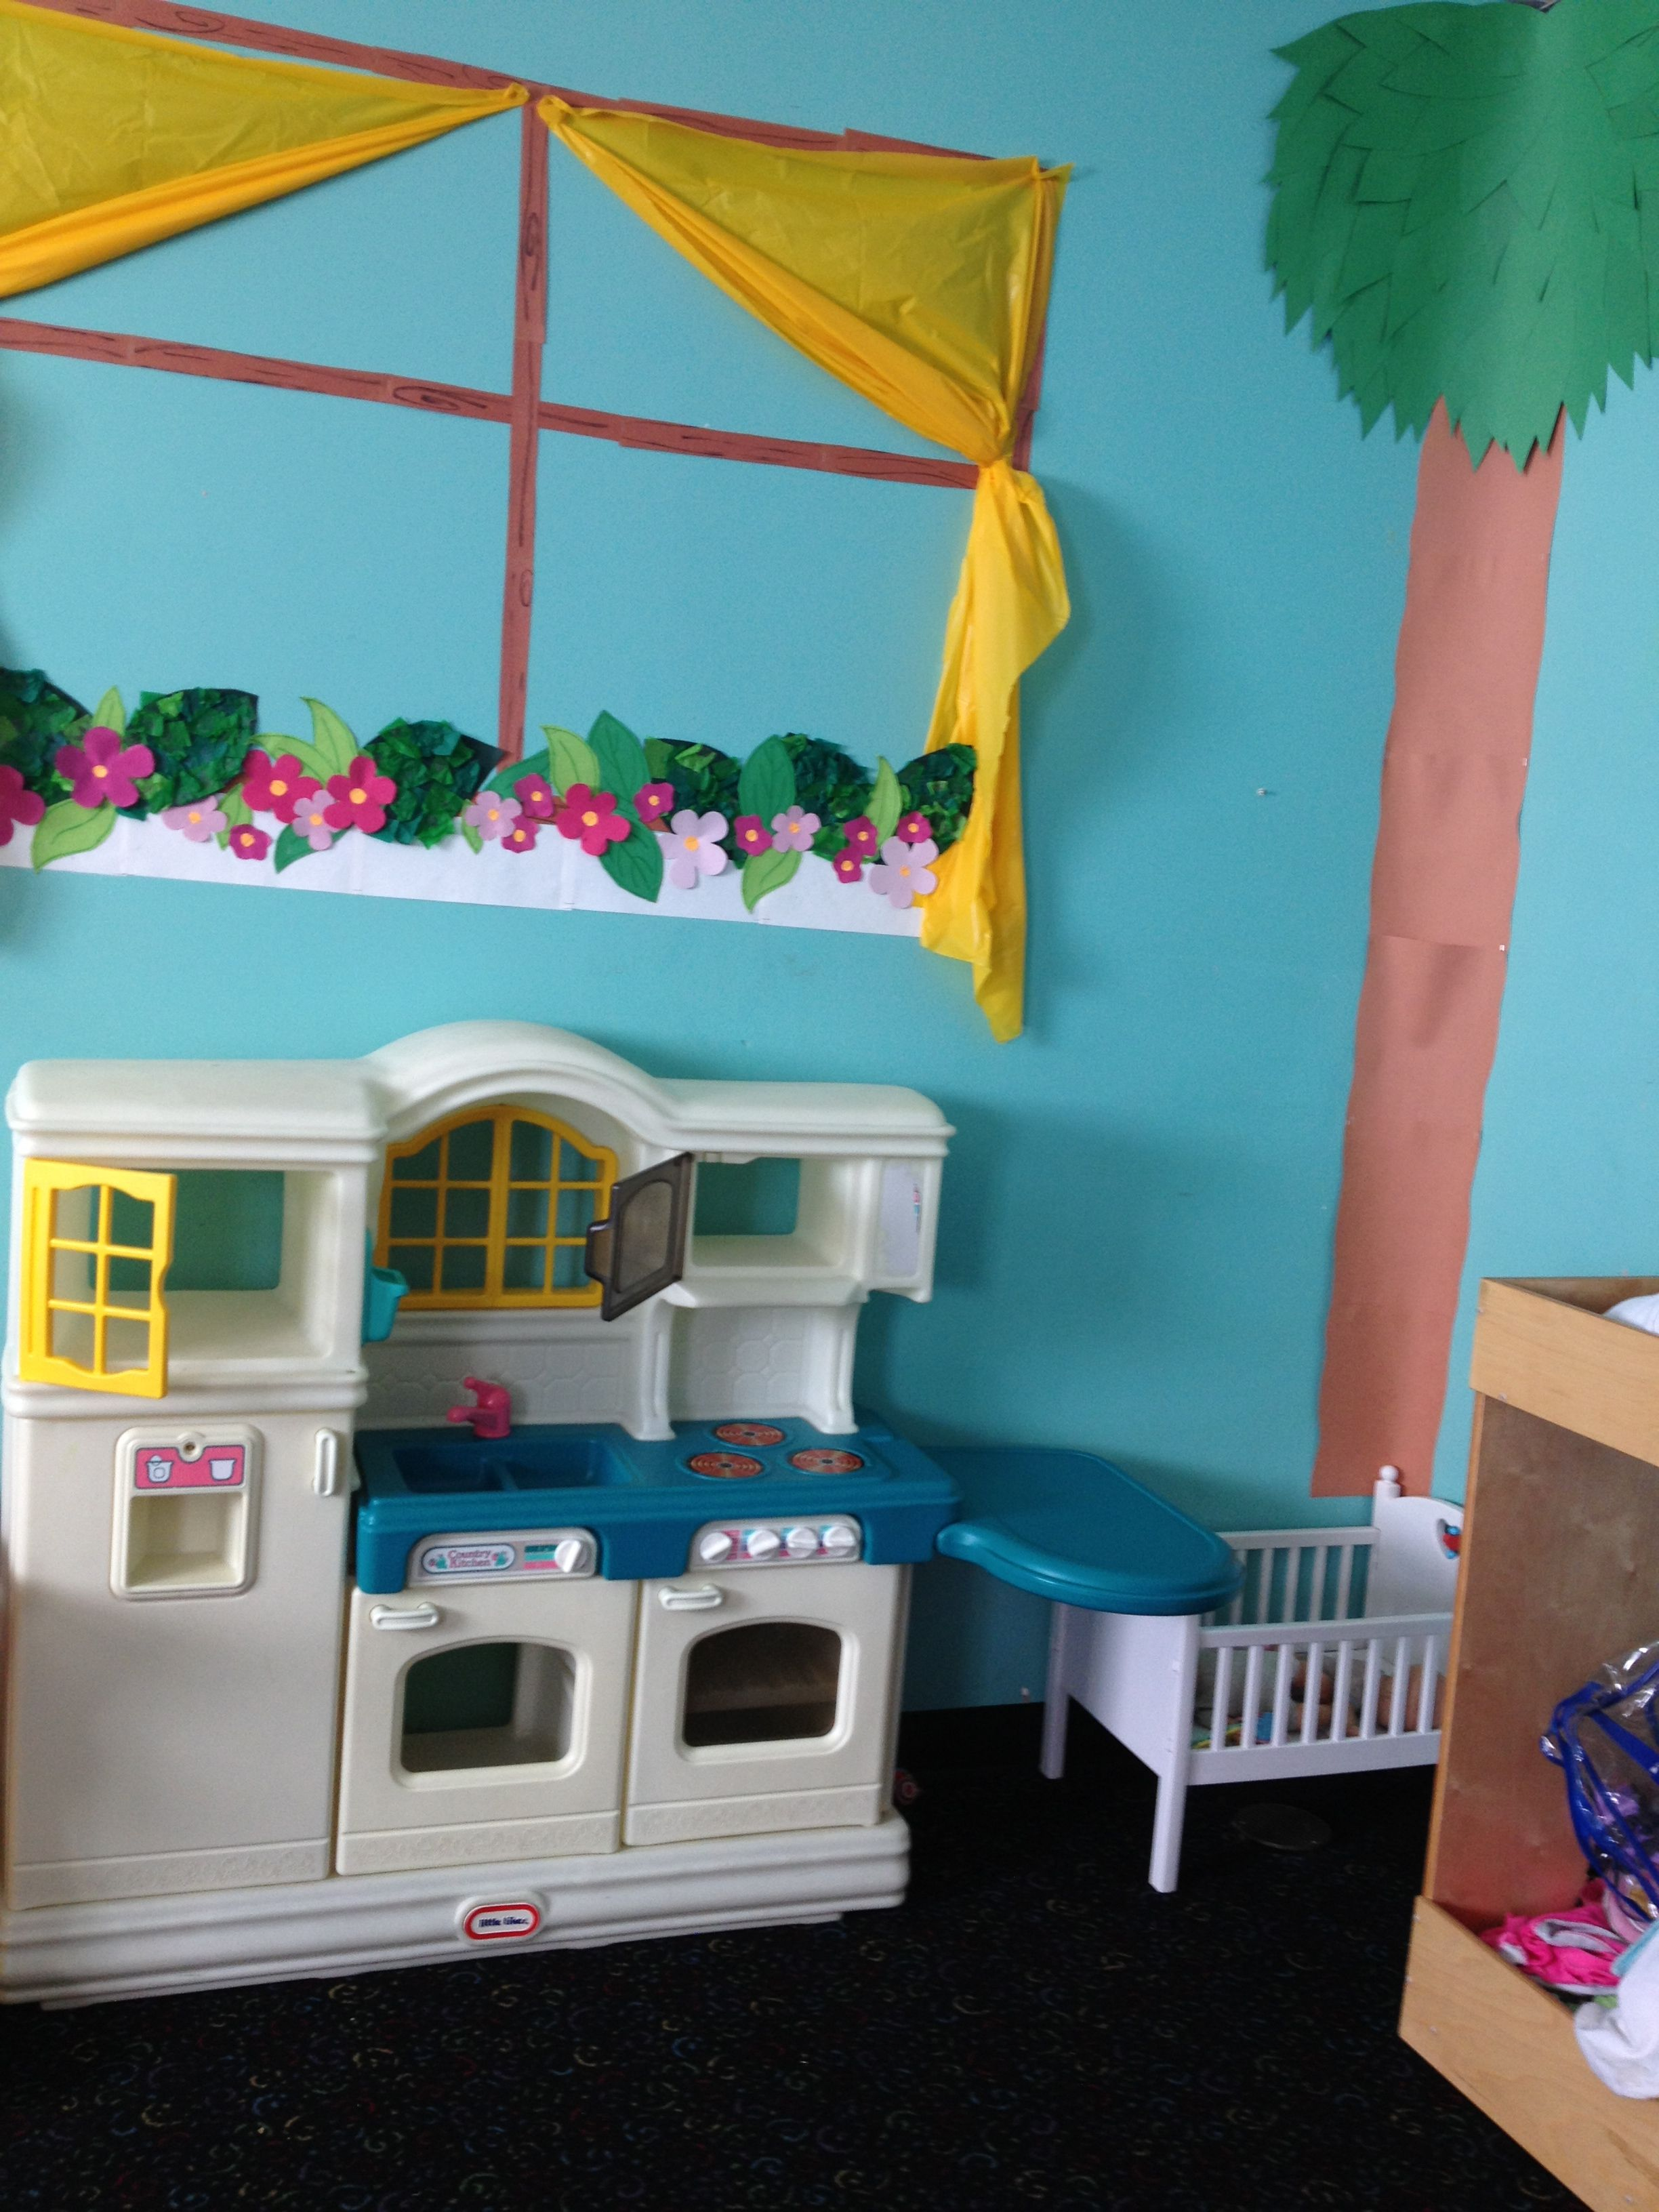 Decor Center Preschool Classroom Creative Dramatic Play Dress Up House